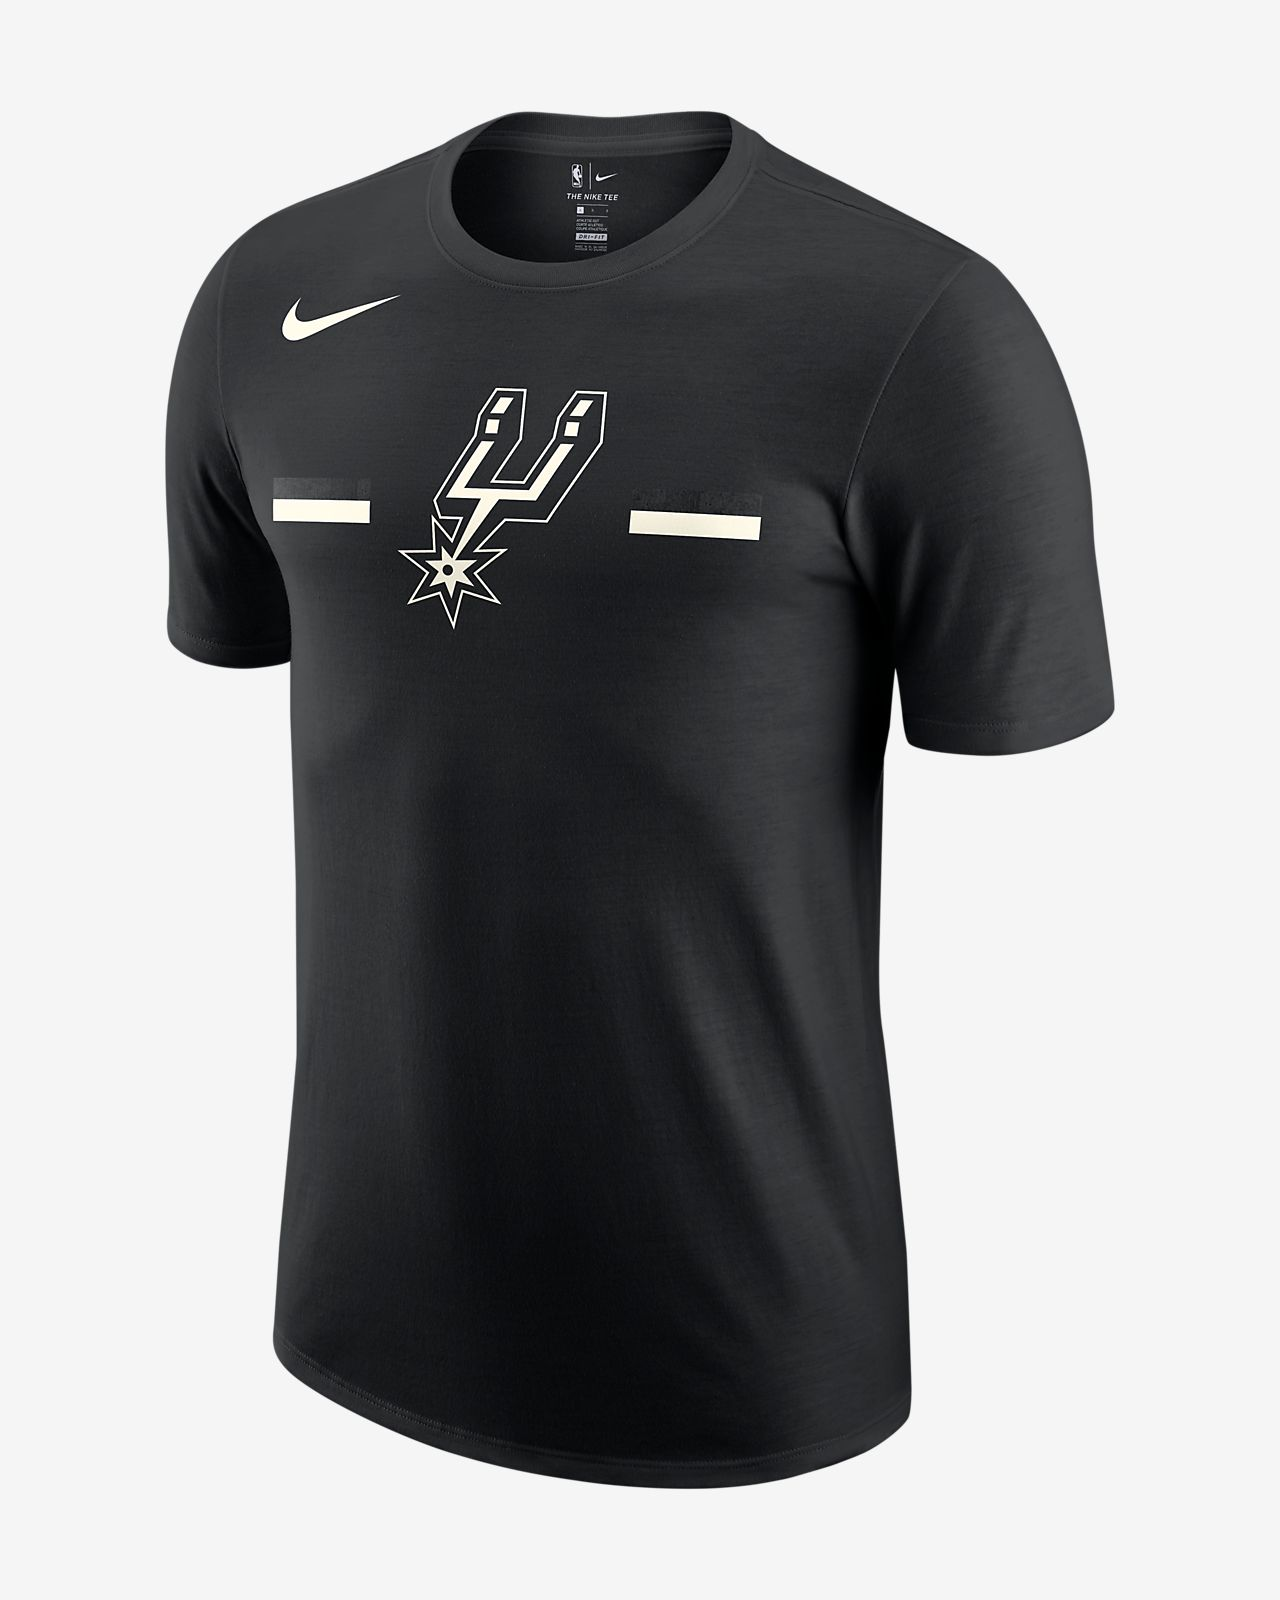 566554d188bef San Antonio Spurs Nike Dri-FIT Men's NBA T-Shirt. Nike.com